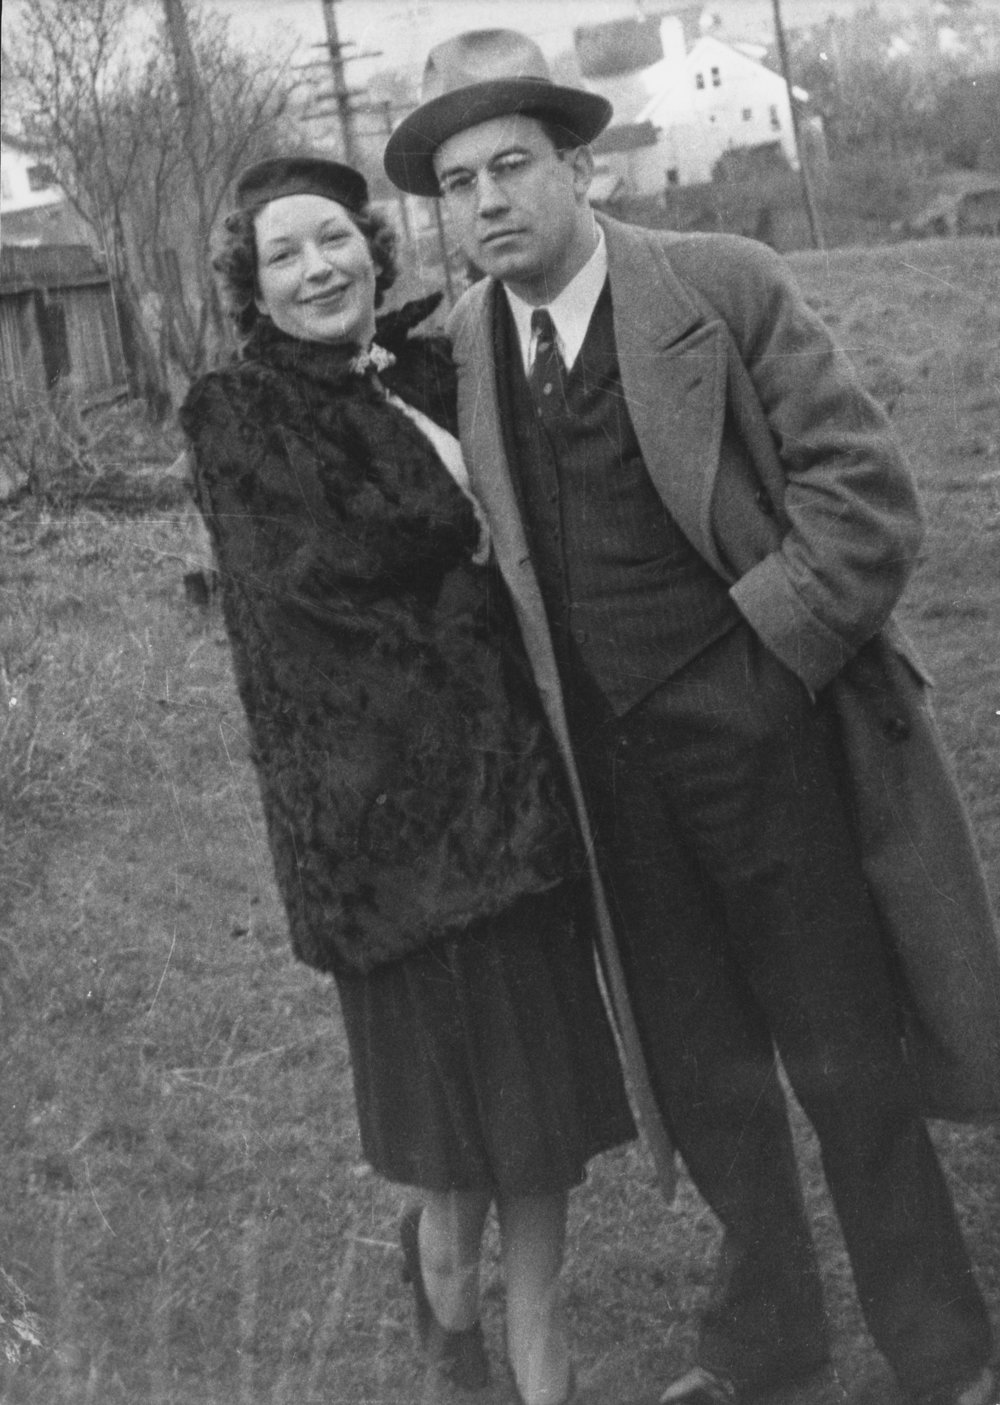 Army & Betty; Gloria Sferra's Parents - Bond Street, Seattle Farm, 1937